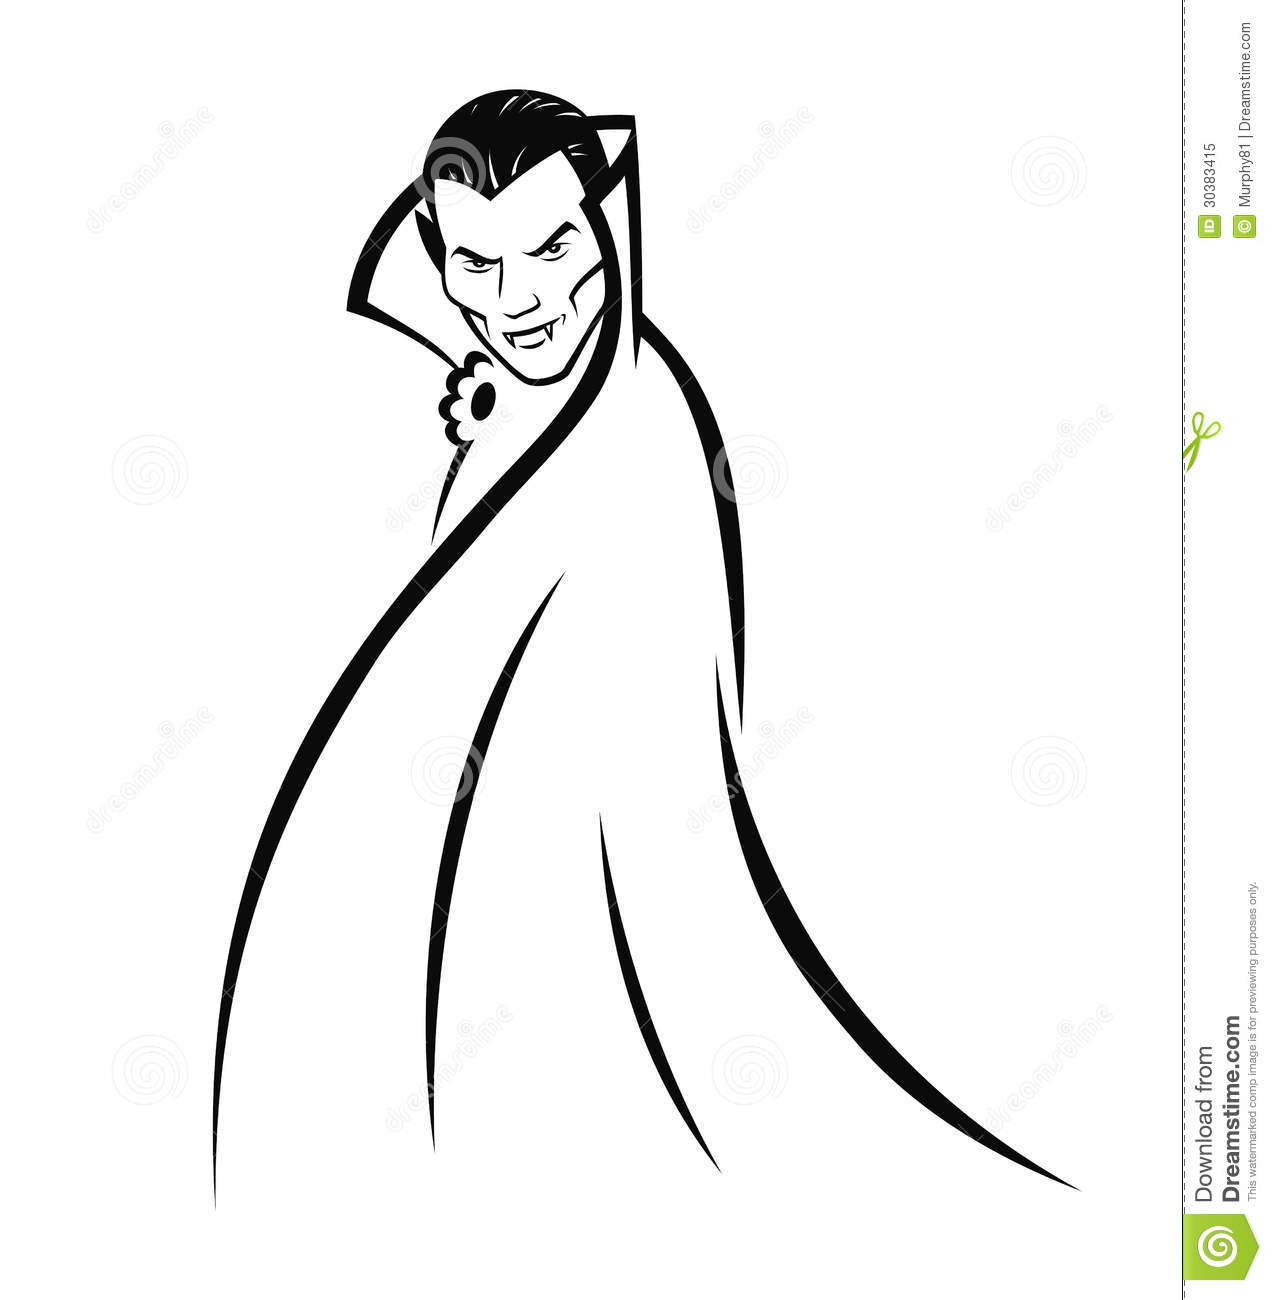 Count Dracula Royalty Free Stock Photo - Image: 30383415